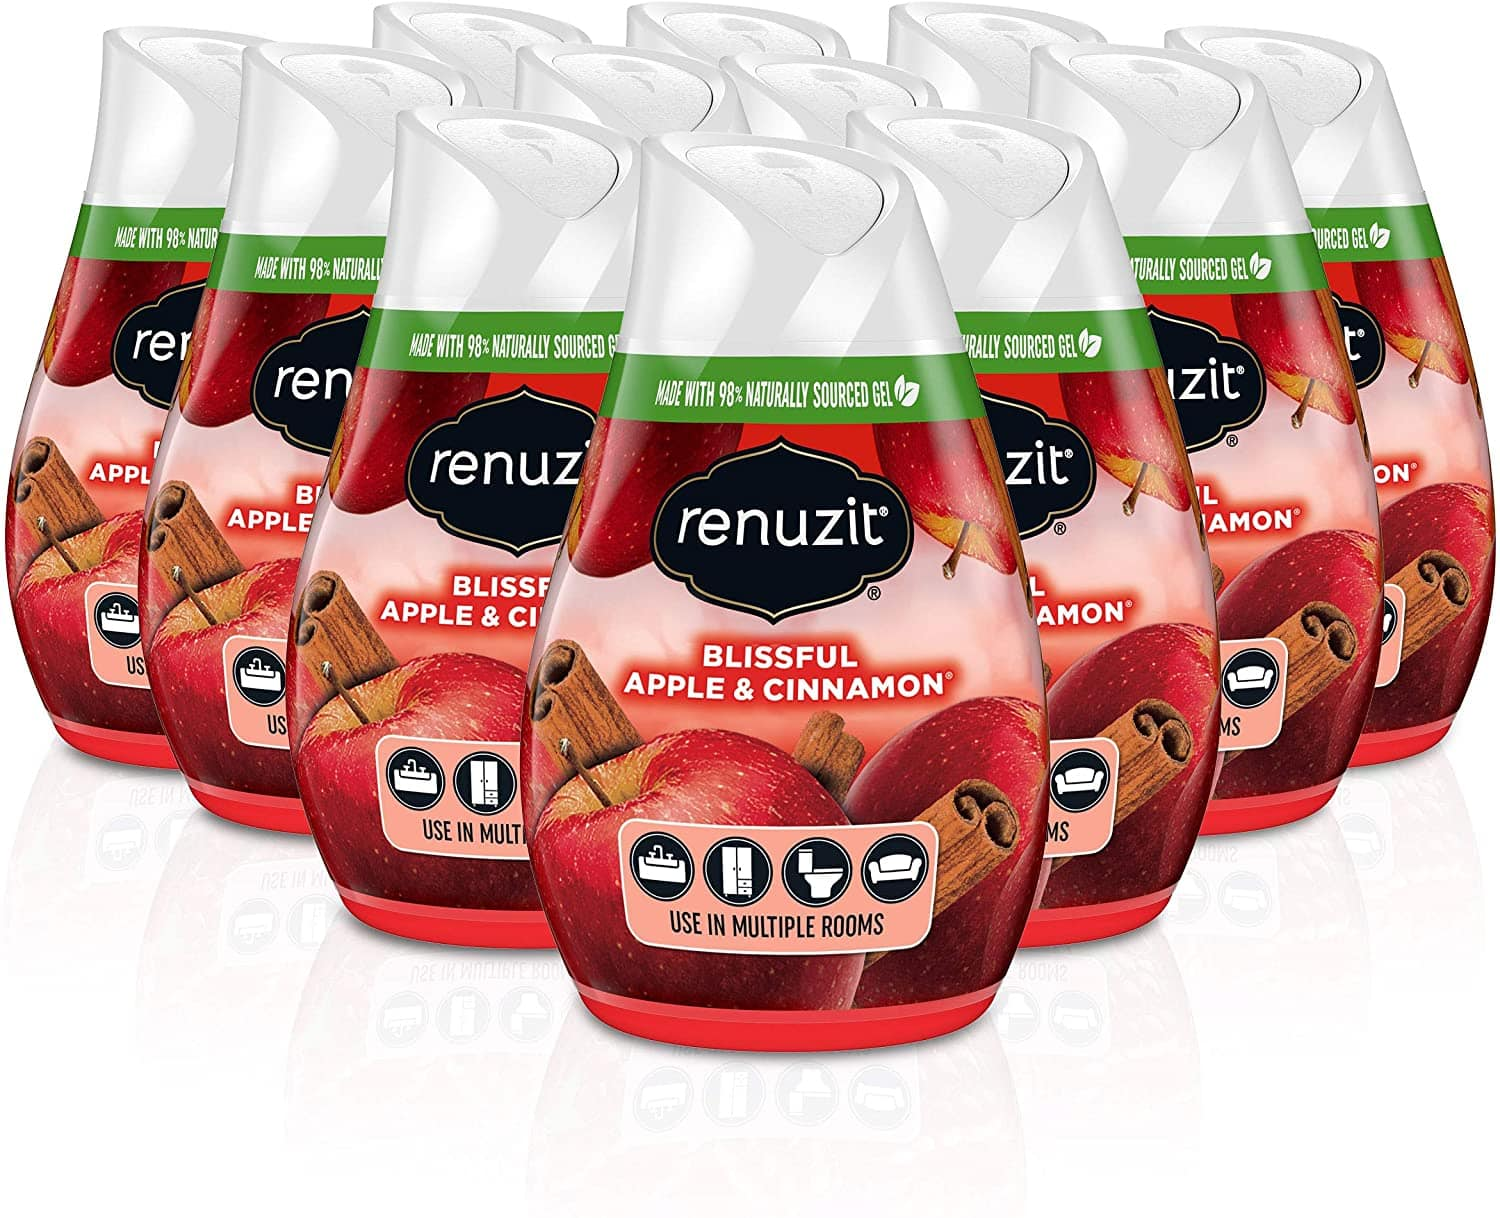 12-Count Renuzit Gel Air Freshener (Blissful Apple & Cinnamon) $7.17 w/ S&S + Free Shipping w/ Prime or on $25+